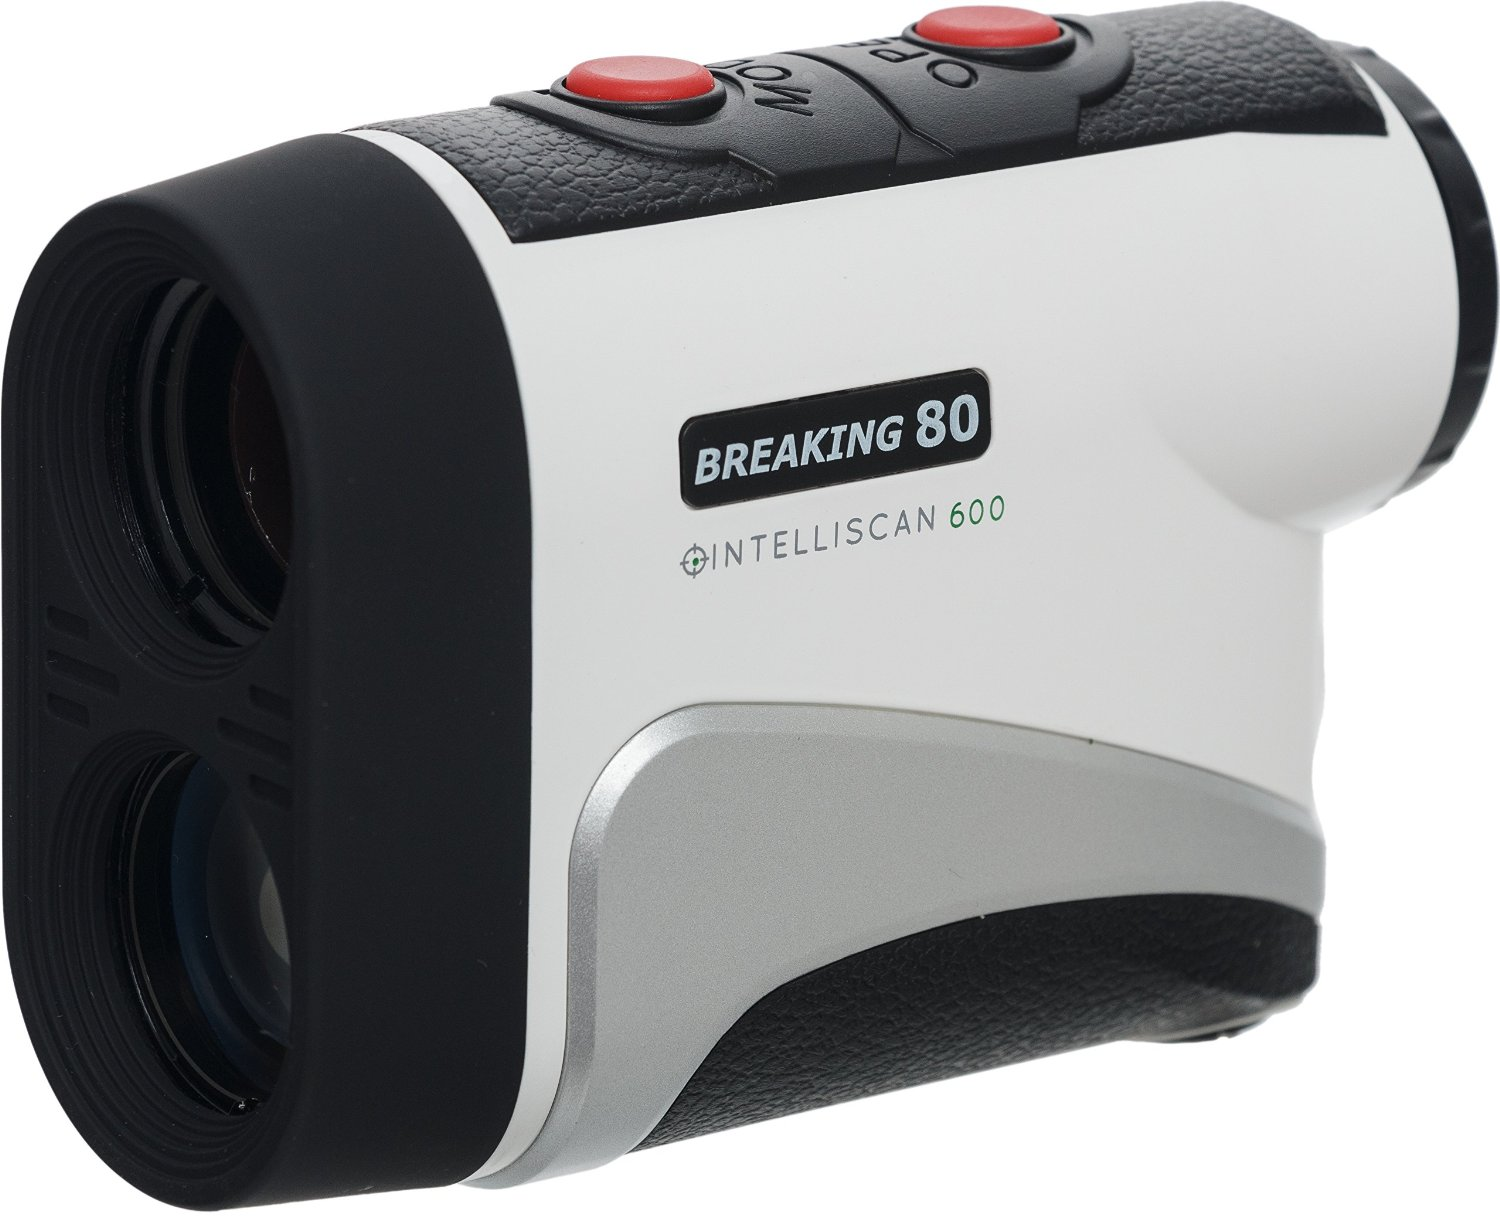 Breaking 80 Golf Slope Laser Range Finders 600